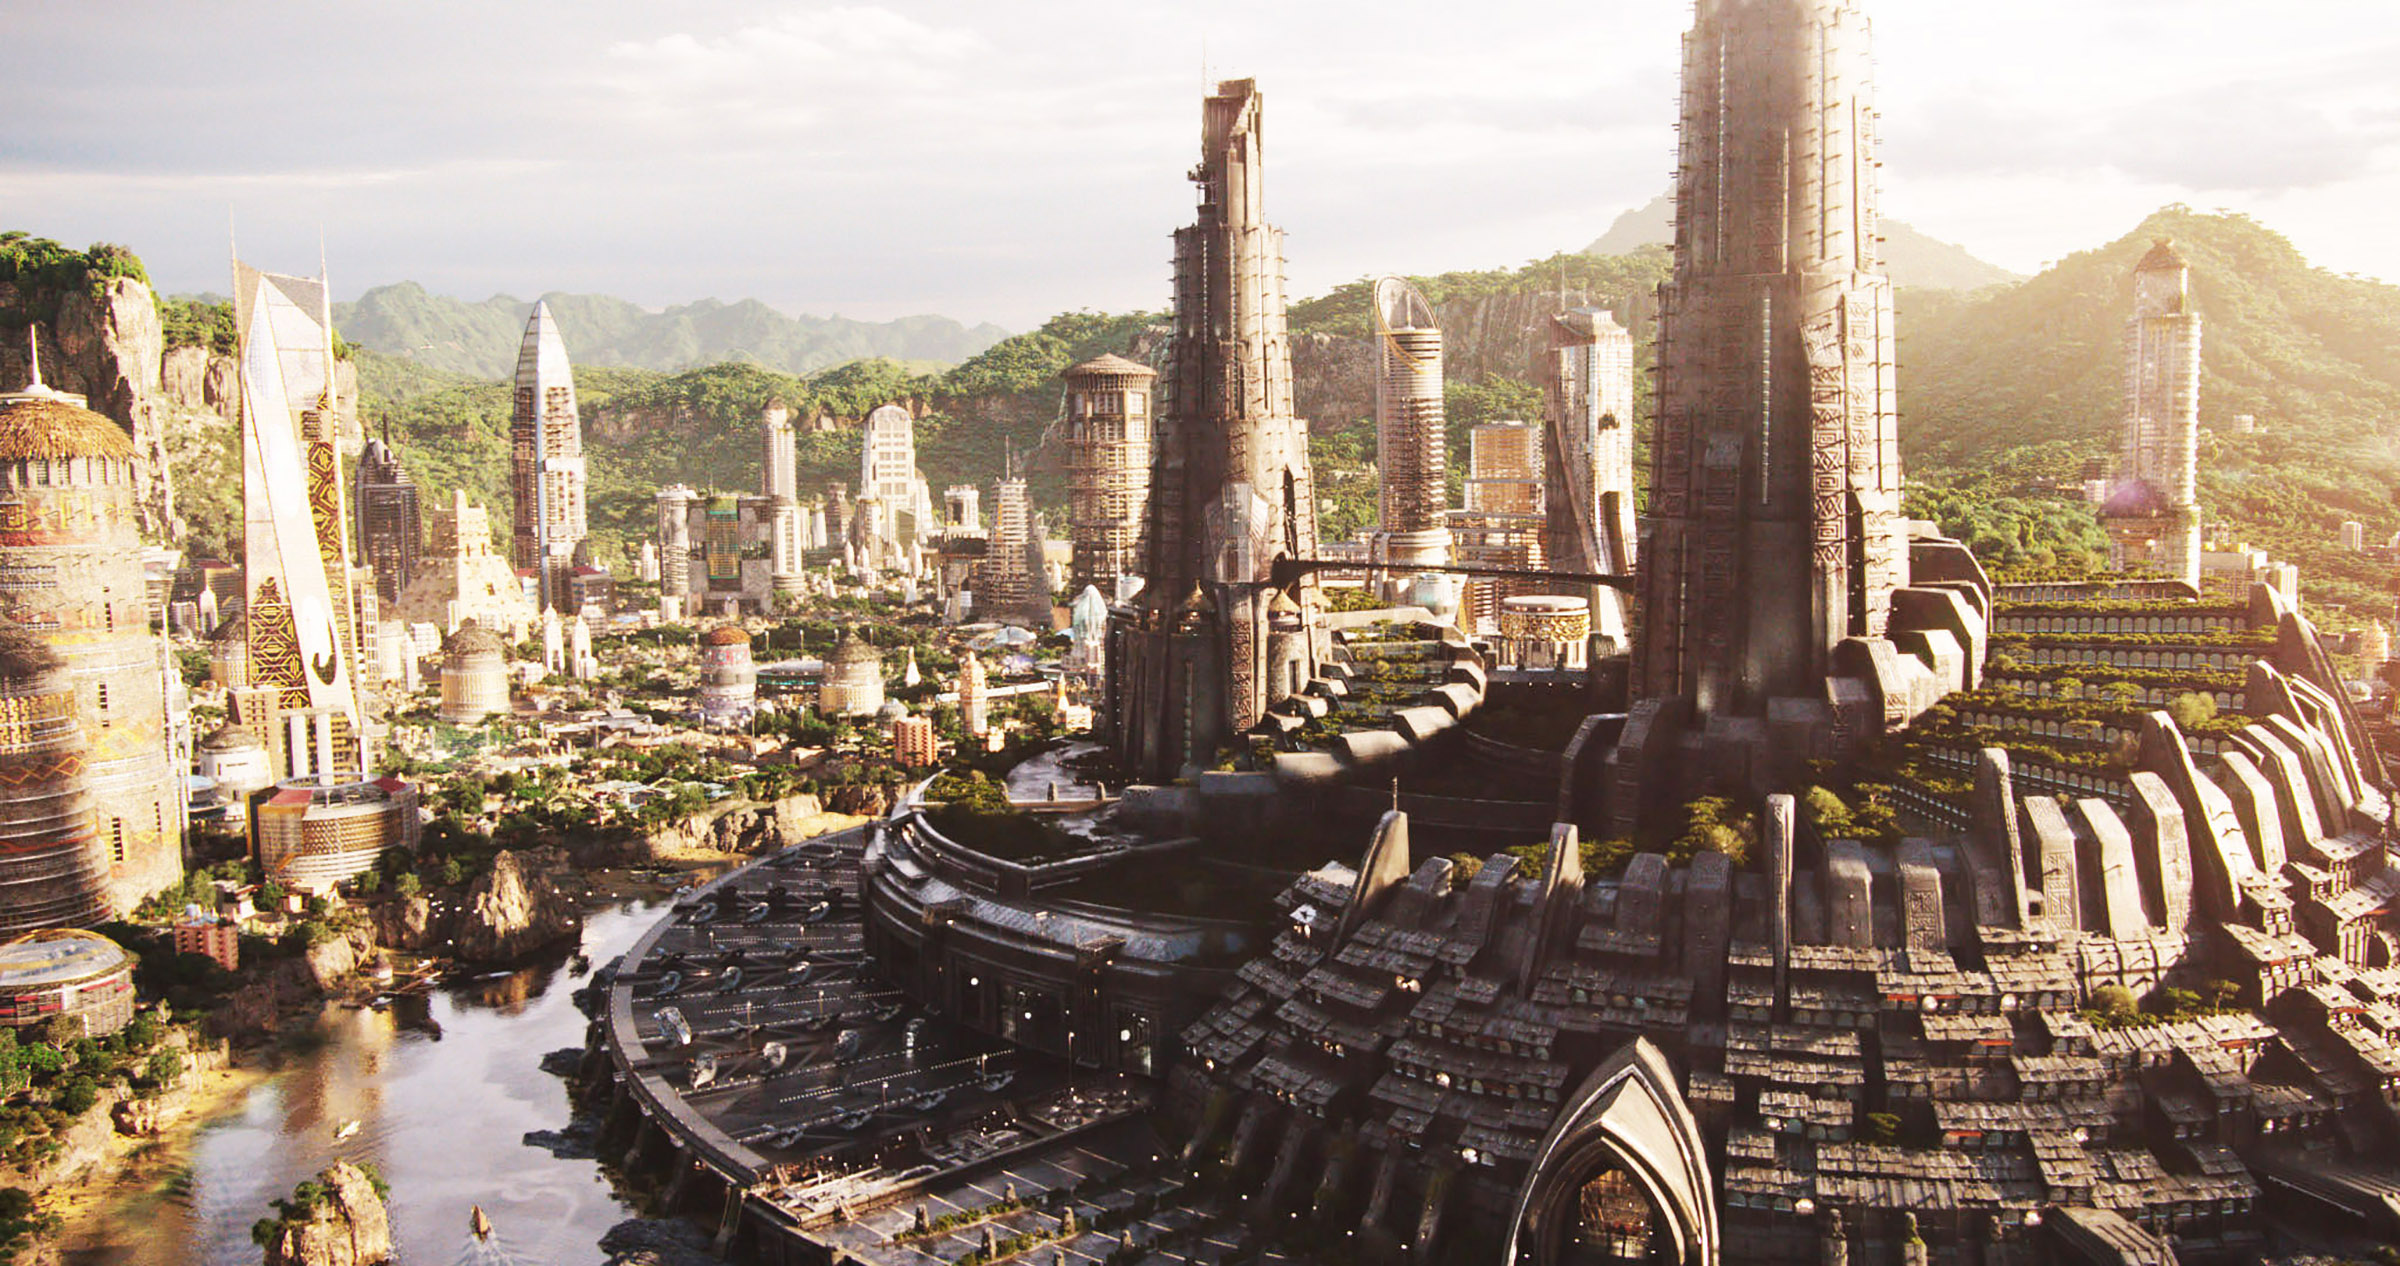 A view of Wakanda, in the movie 'Black Panther'.